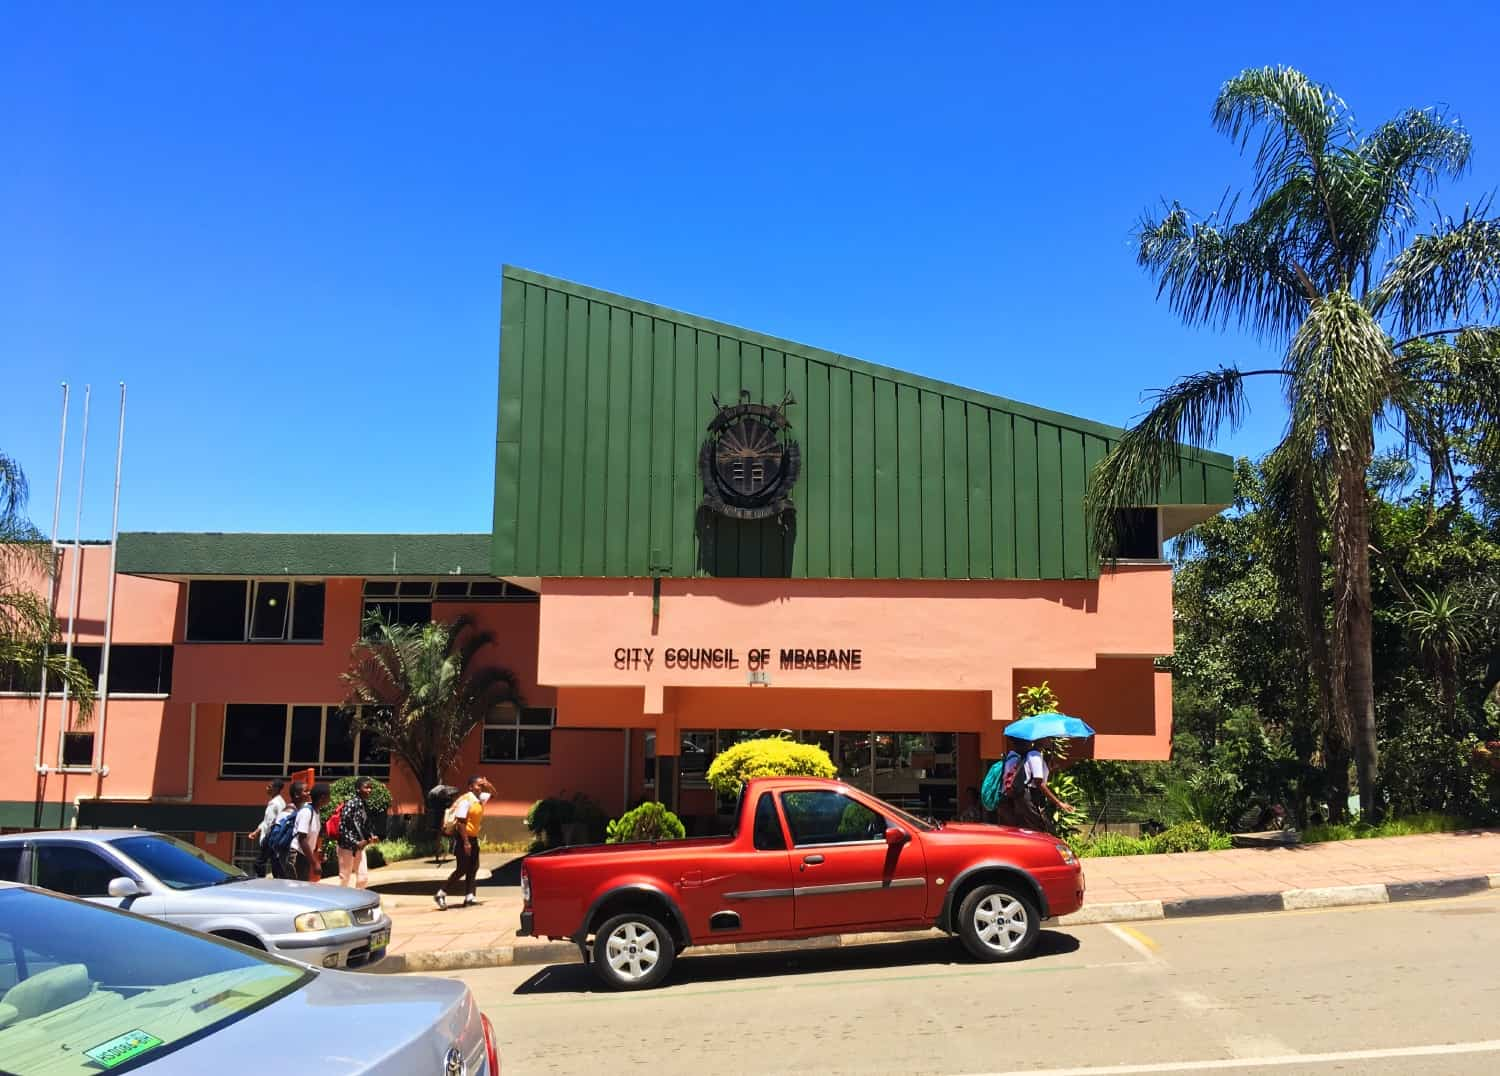 City Council of Mbabane